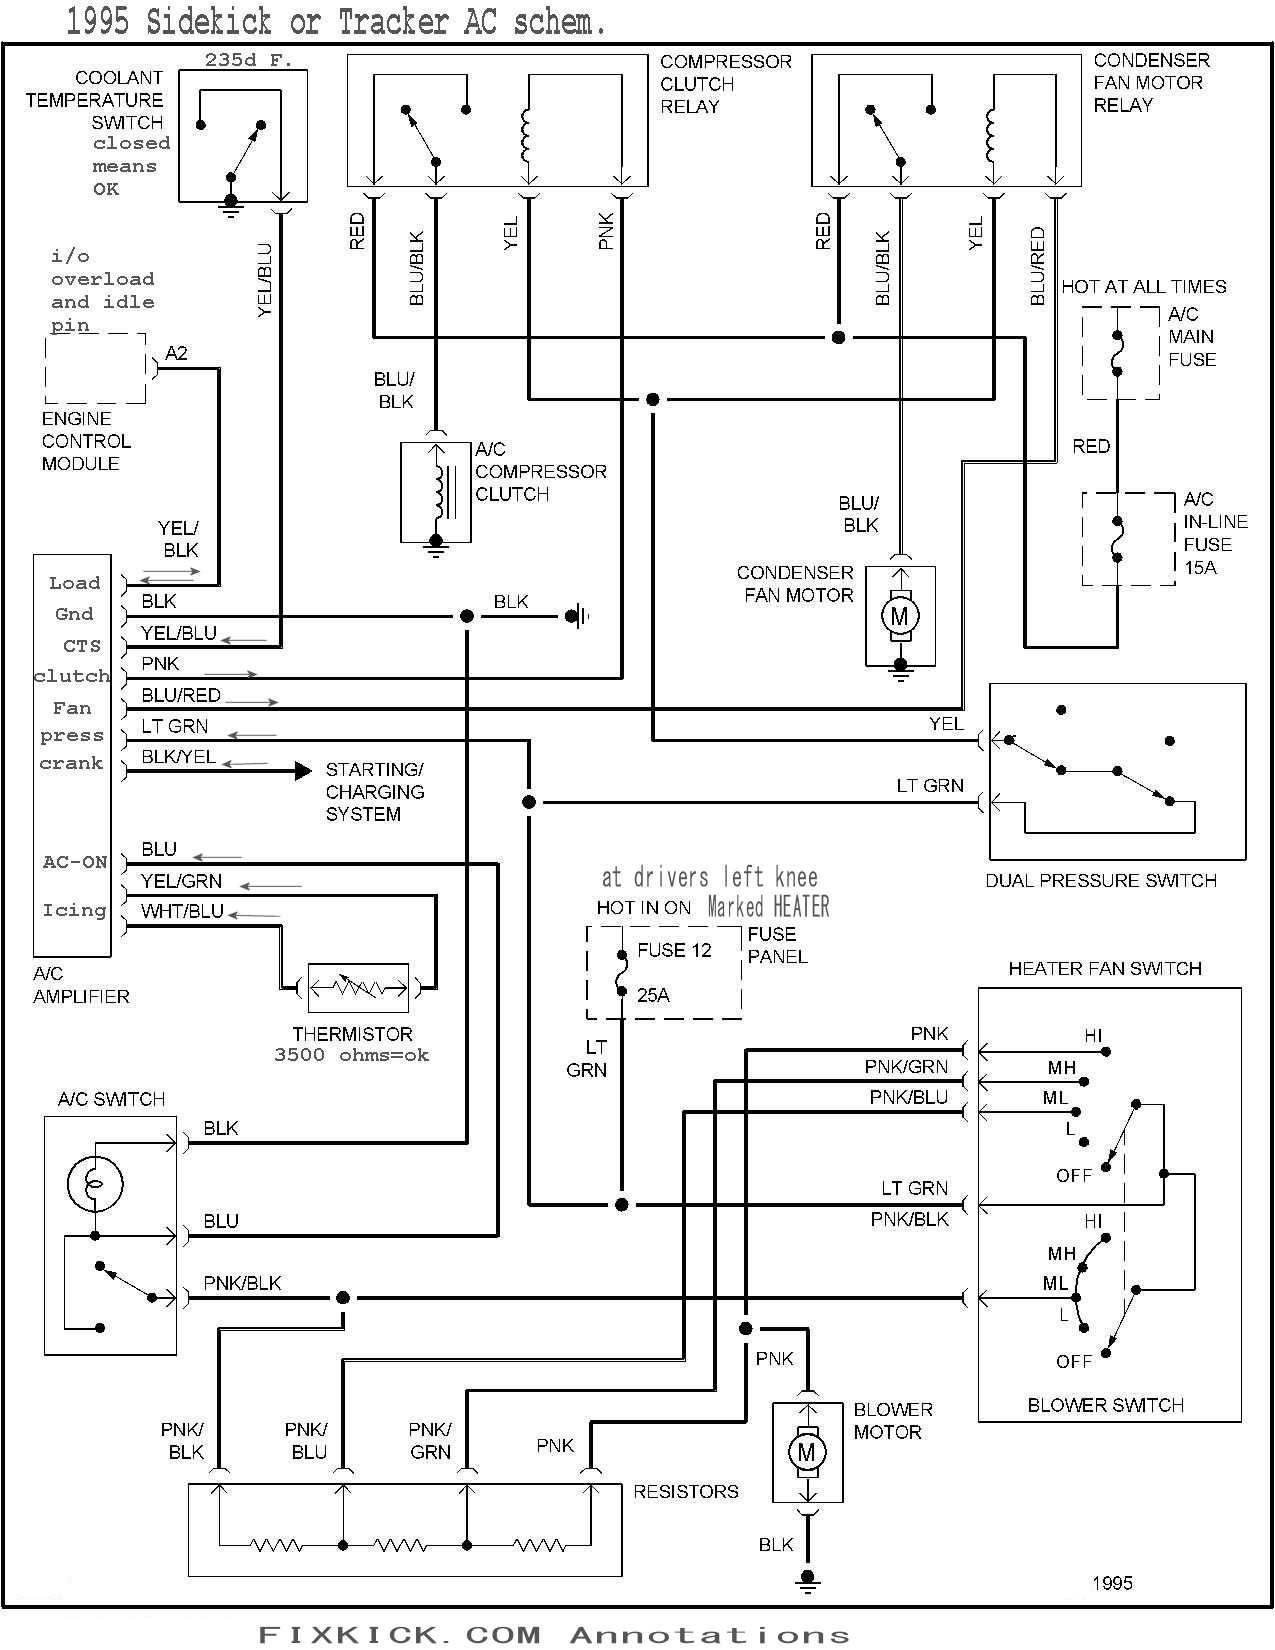 95 AC elect draw air conditioner repair suzuki sidekick wiring diagrams at crackthecode.co